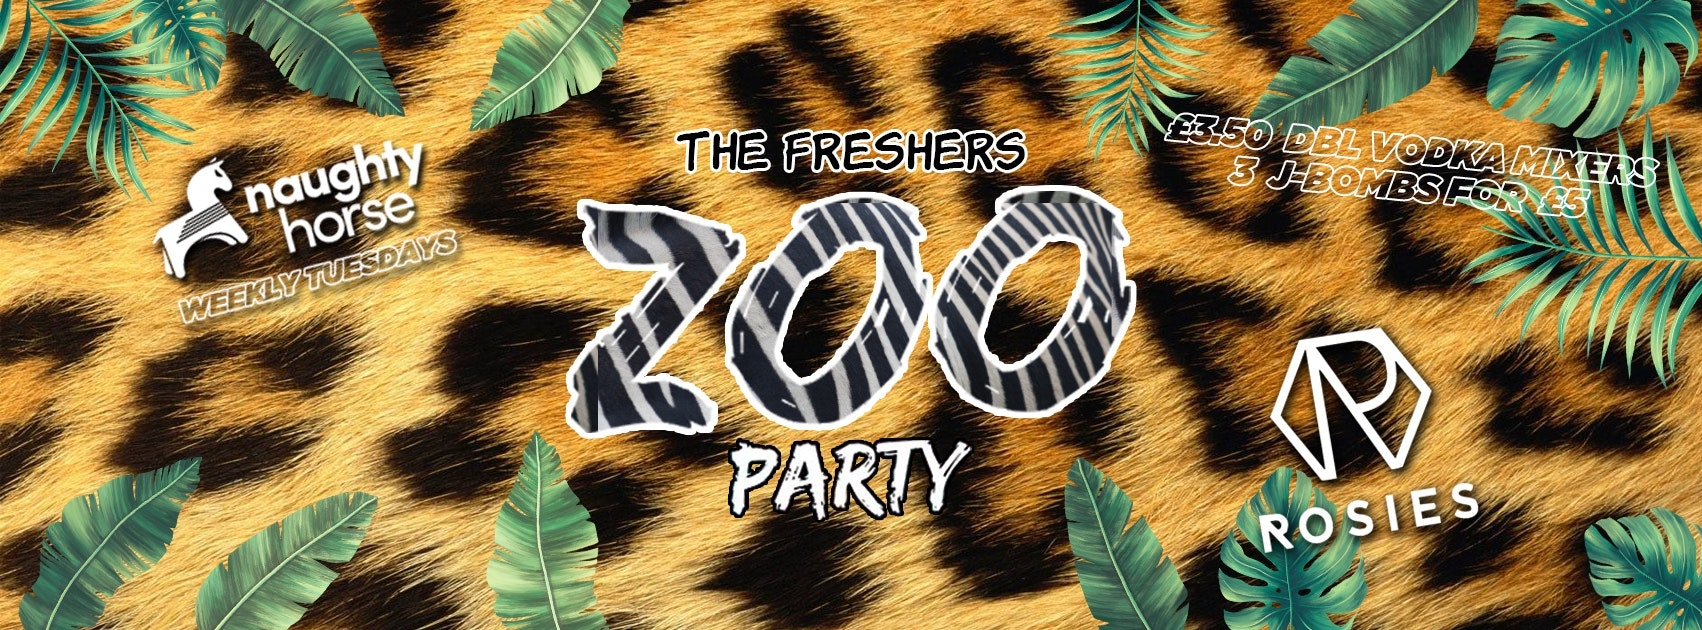 FRESHERS ZOO – Rosies! Birmingham Freshers 2021 [Limited individual tickets – official naughty horse freshers wristband event!]